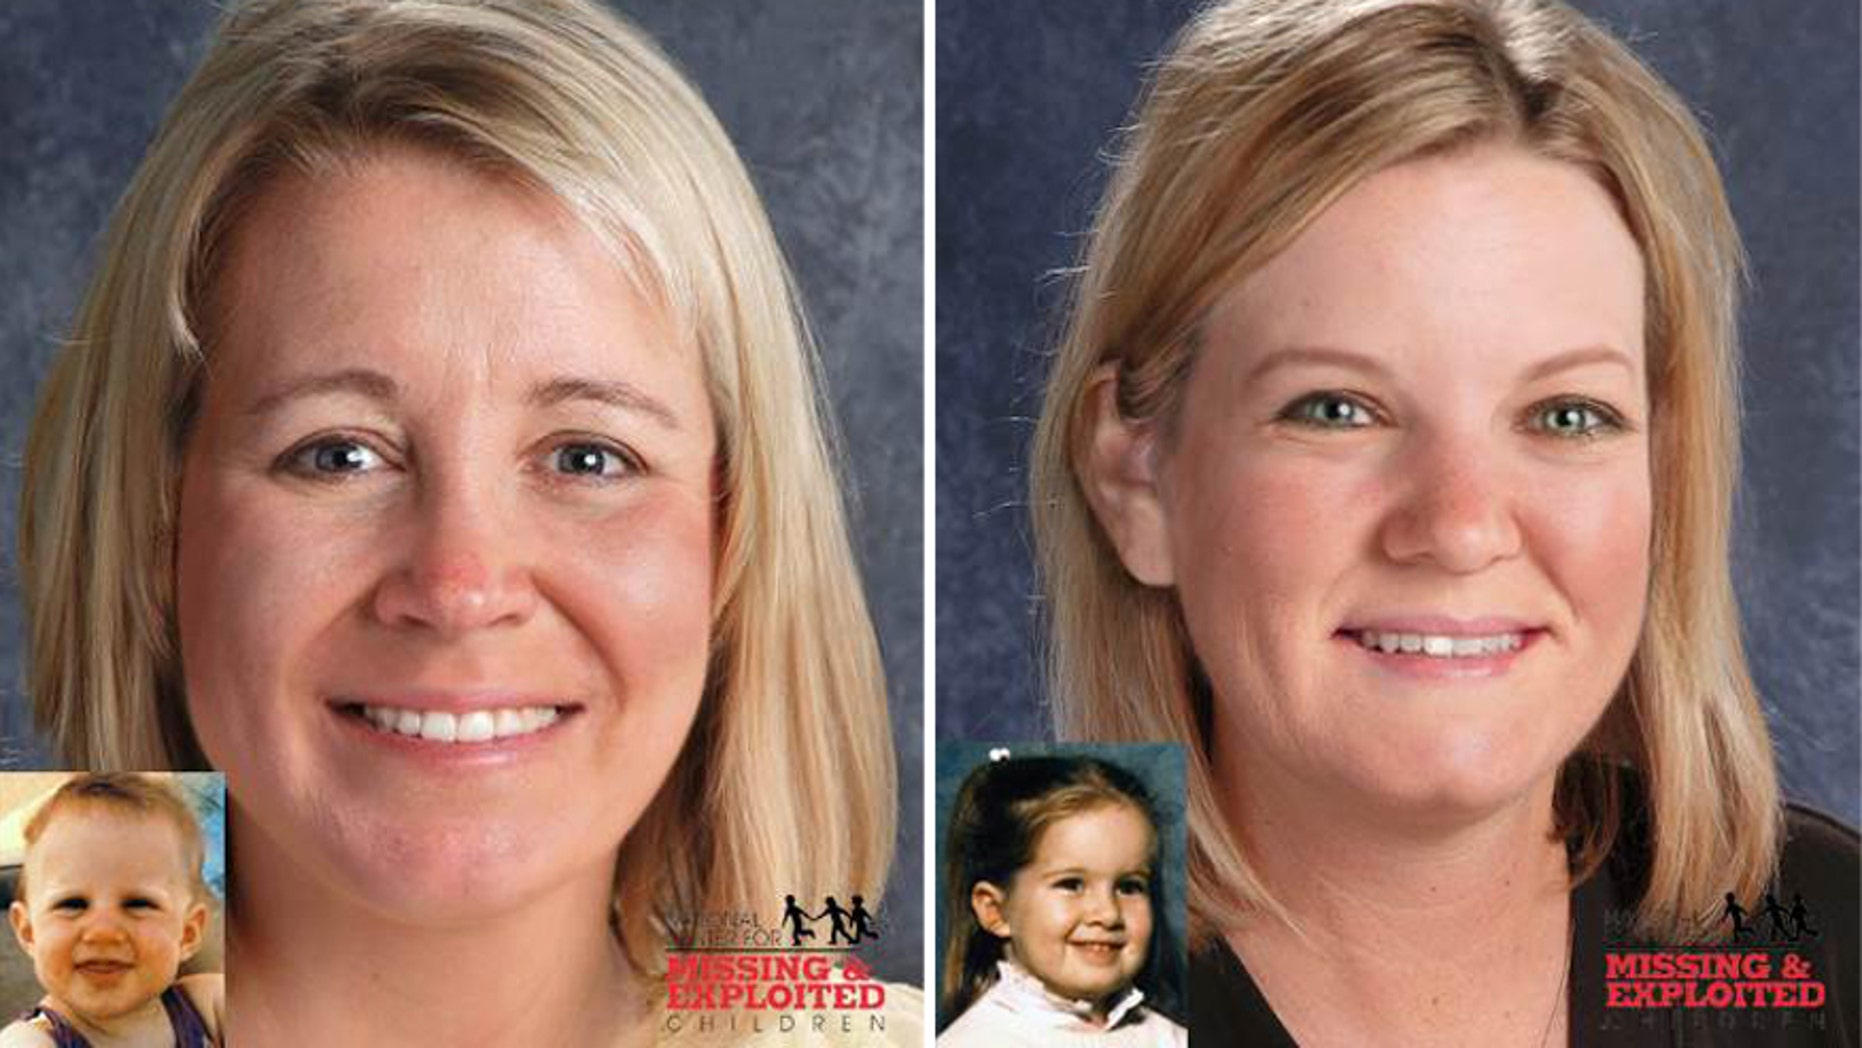 Composites of Kelly and Kimberly Yates, who were abducted in 1985.